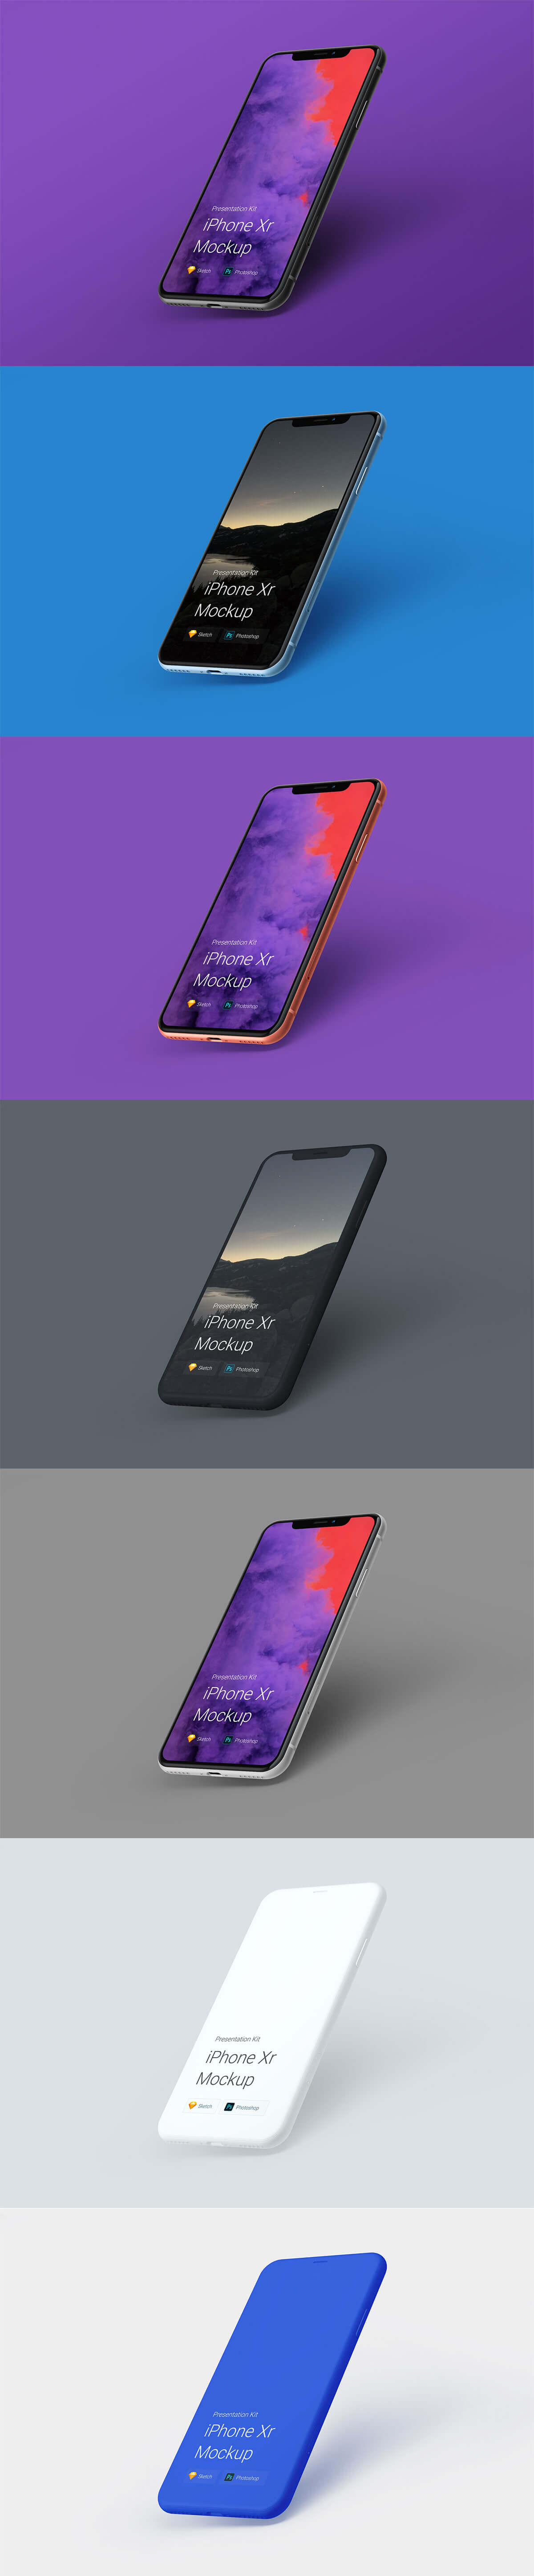 Free iPhone Xr Mockup